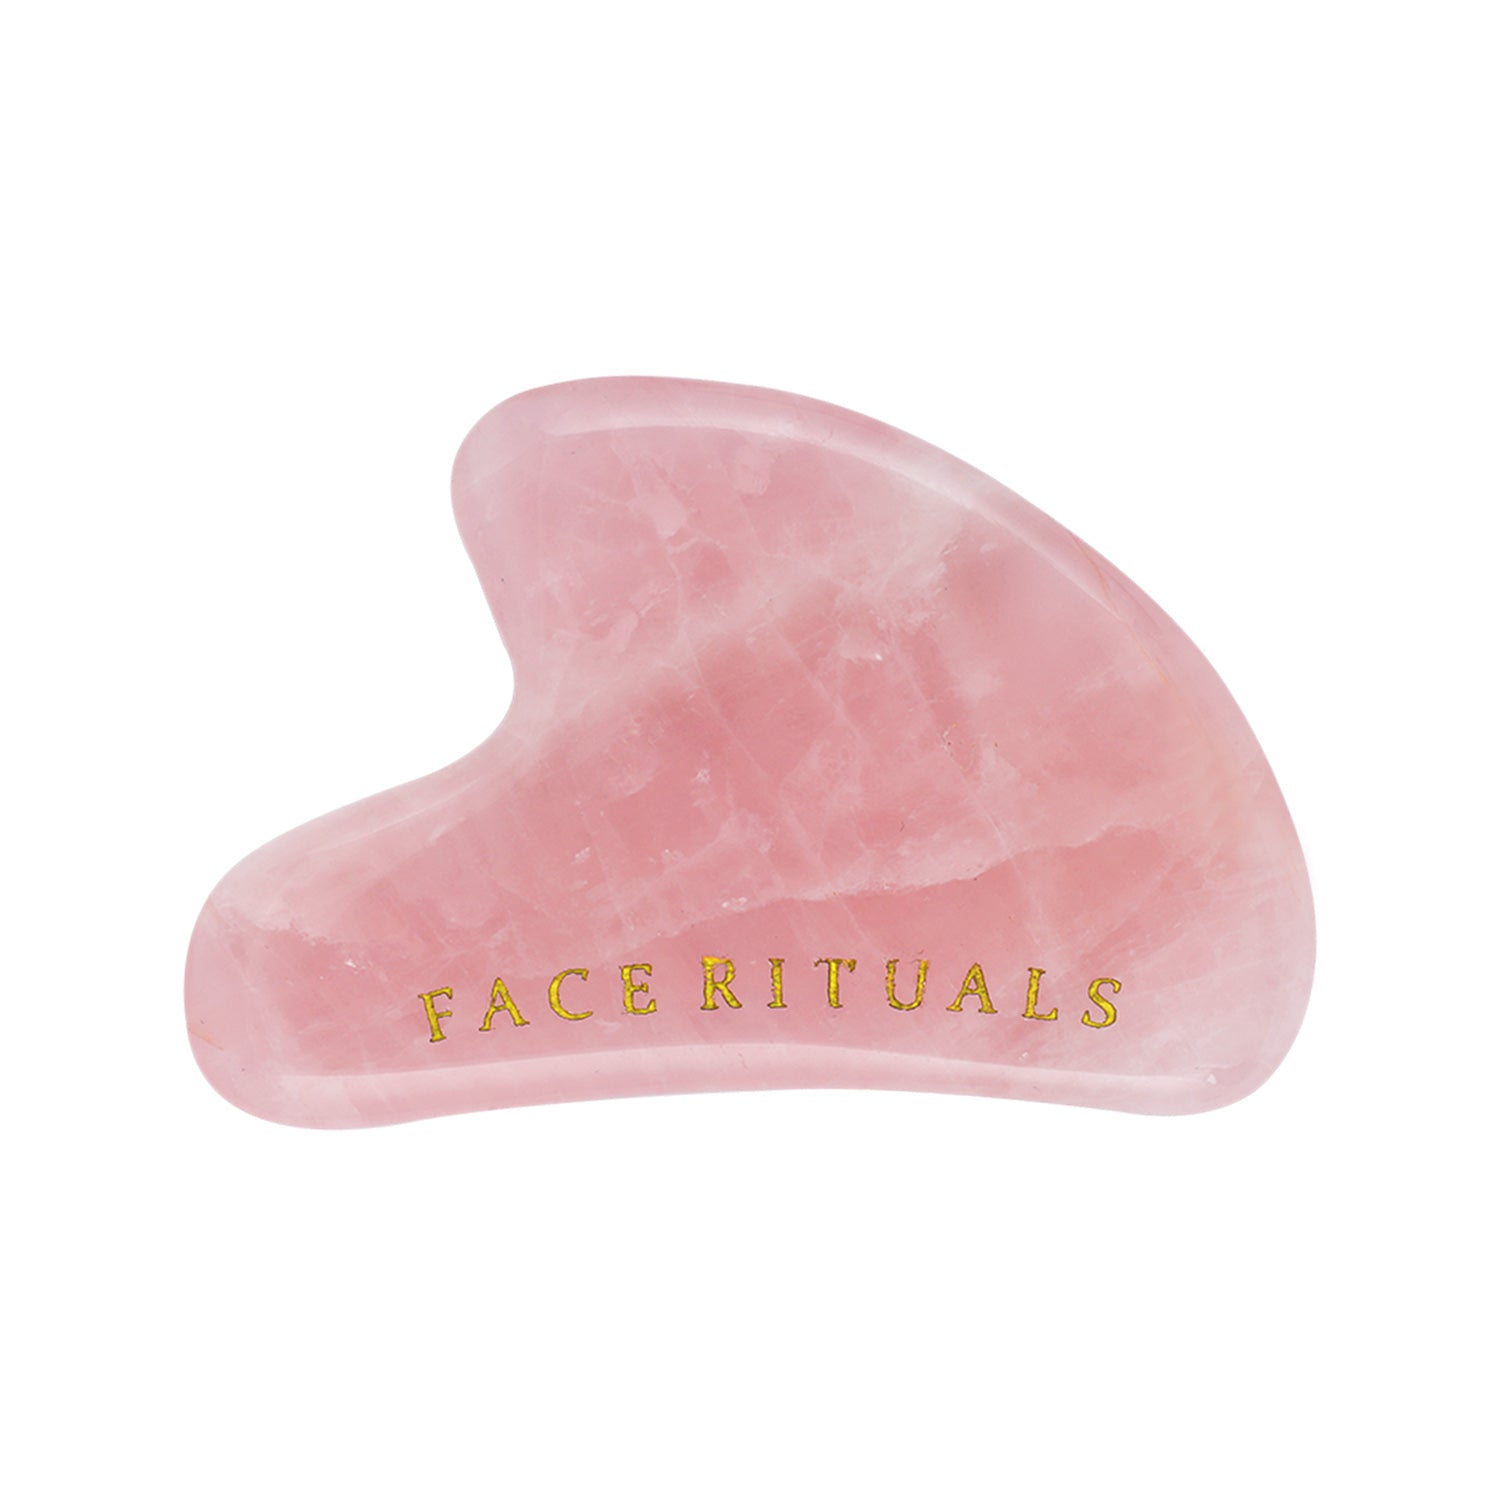 Face Rituals Rose Quartz Gua Sha